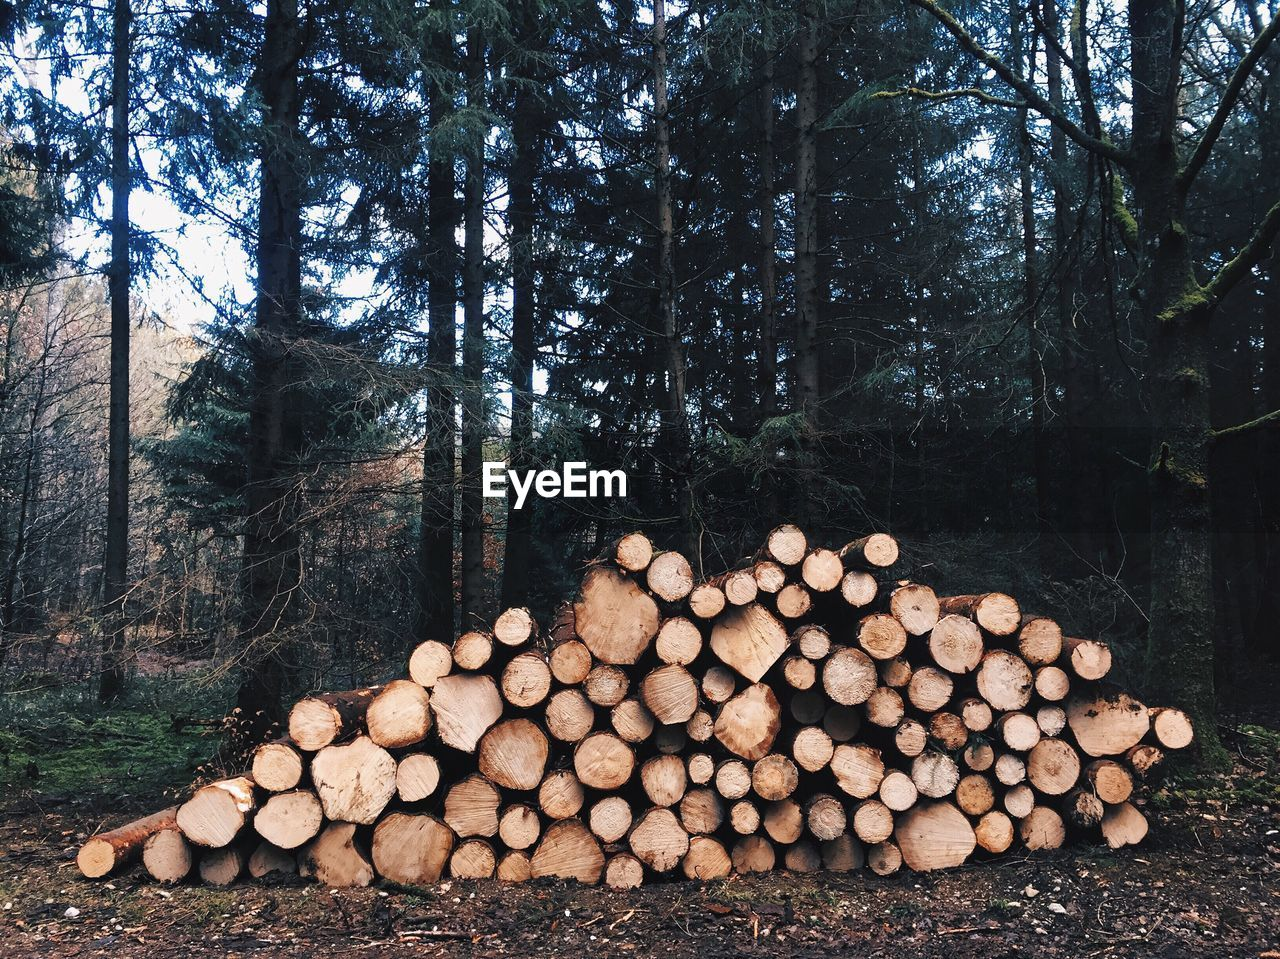 Stack of logs against trees at forest